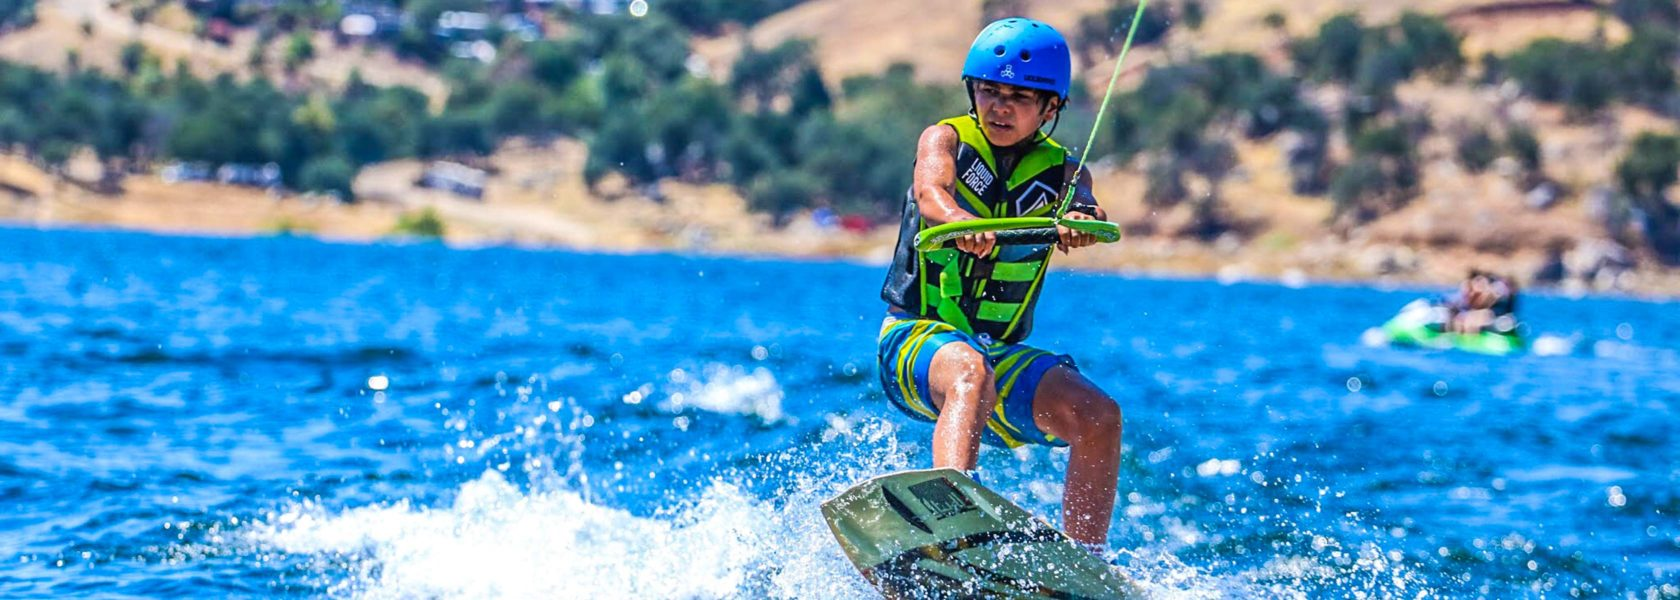 A camper wakeboarding in the lake